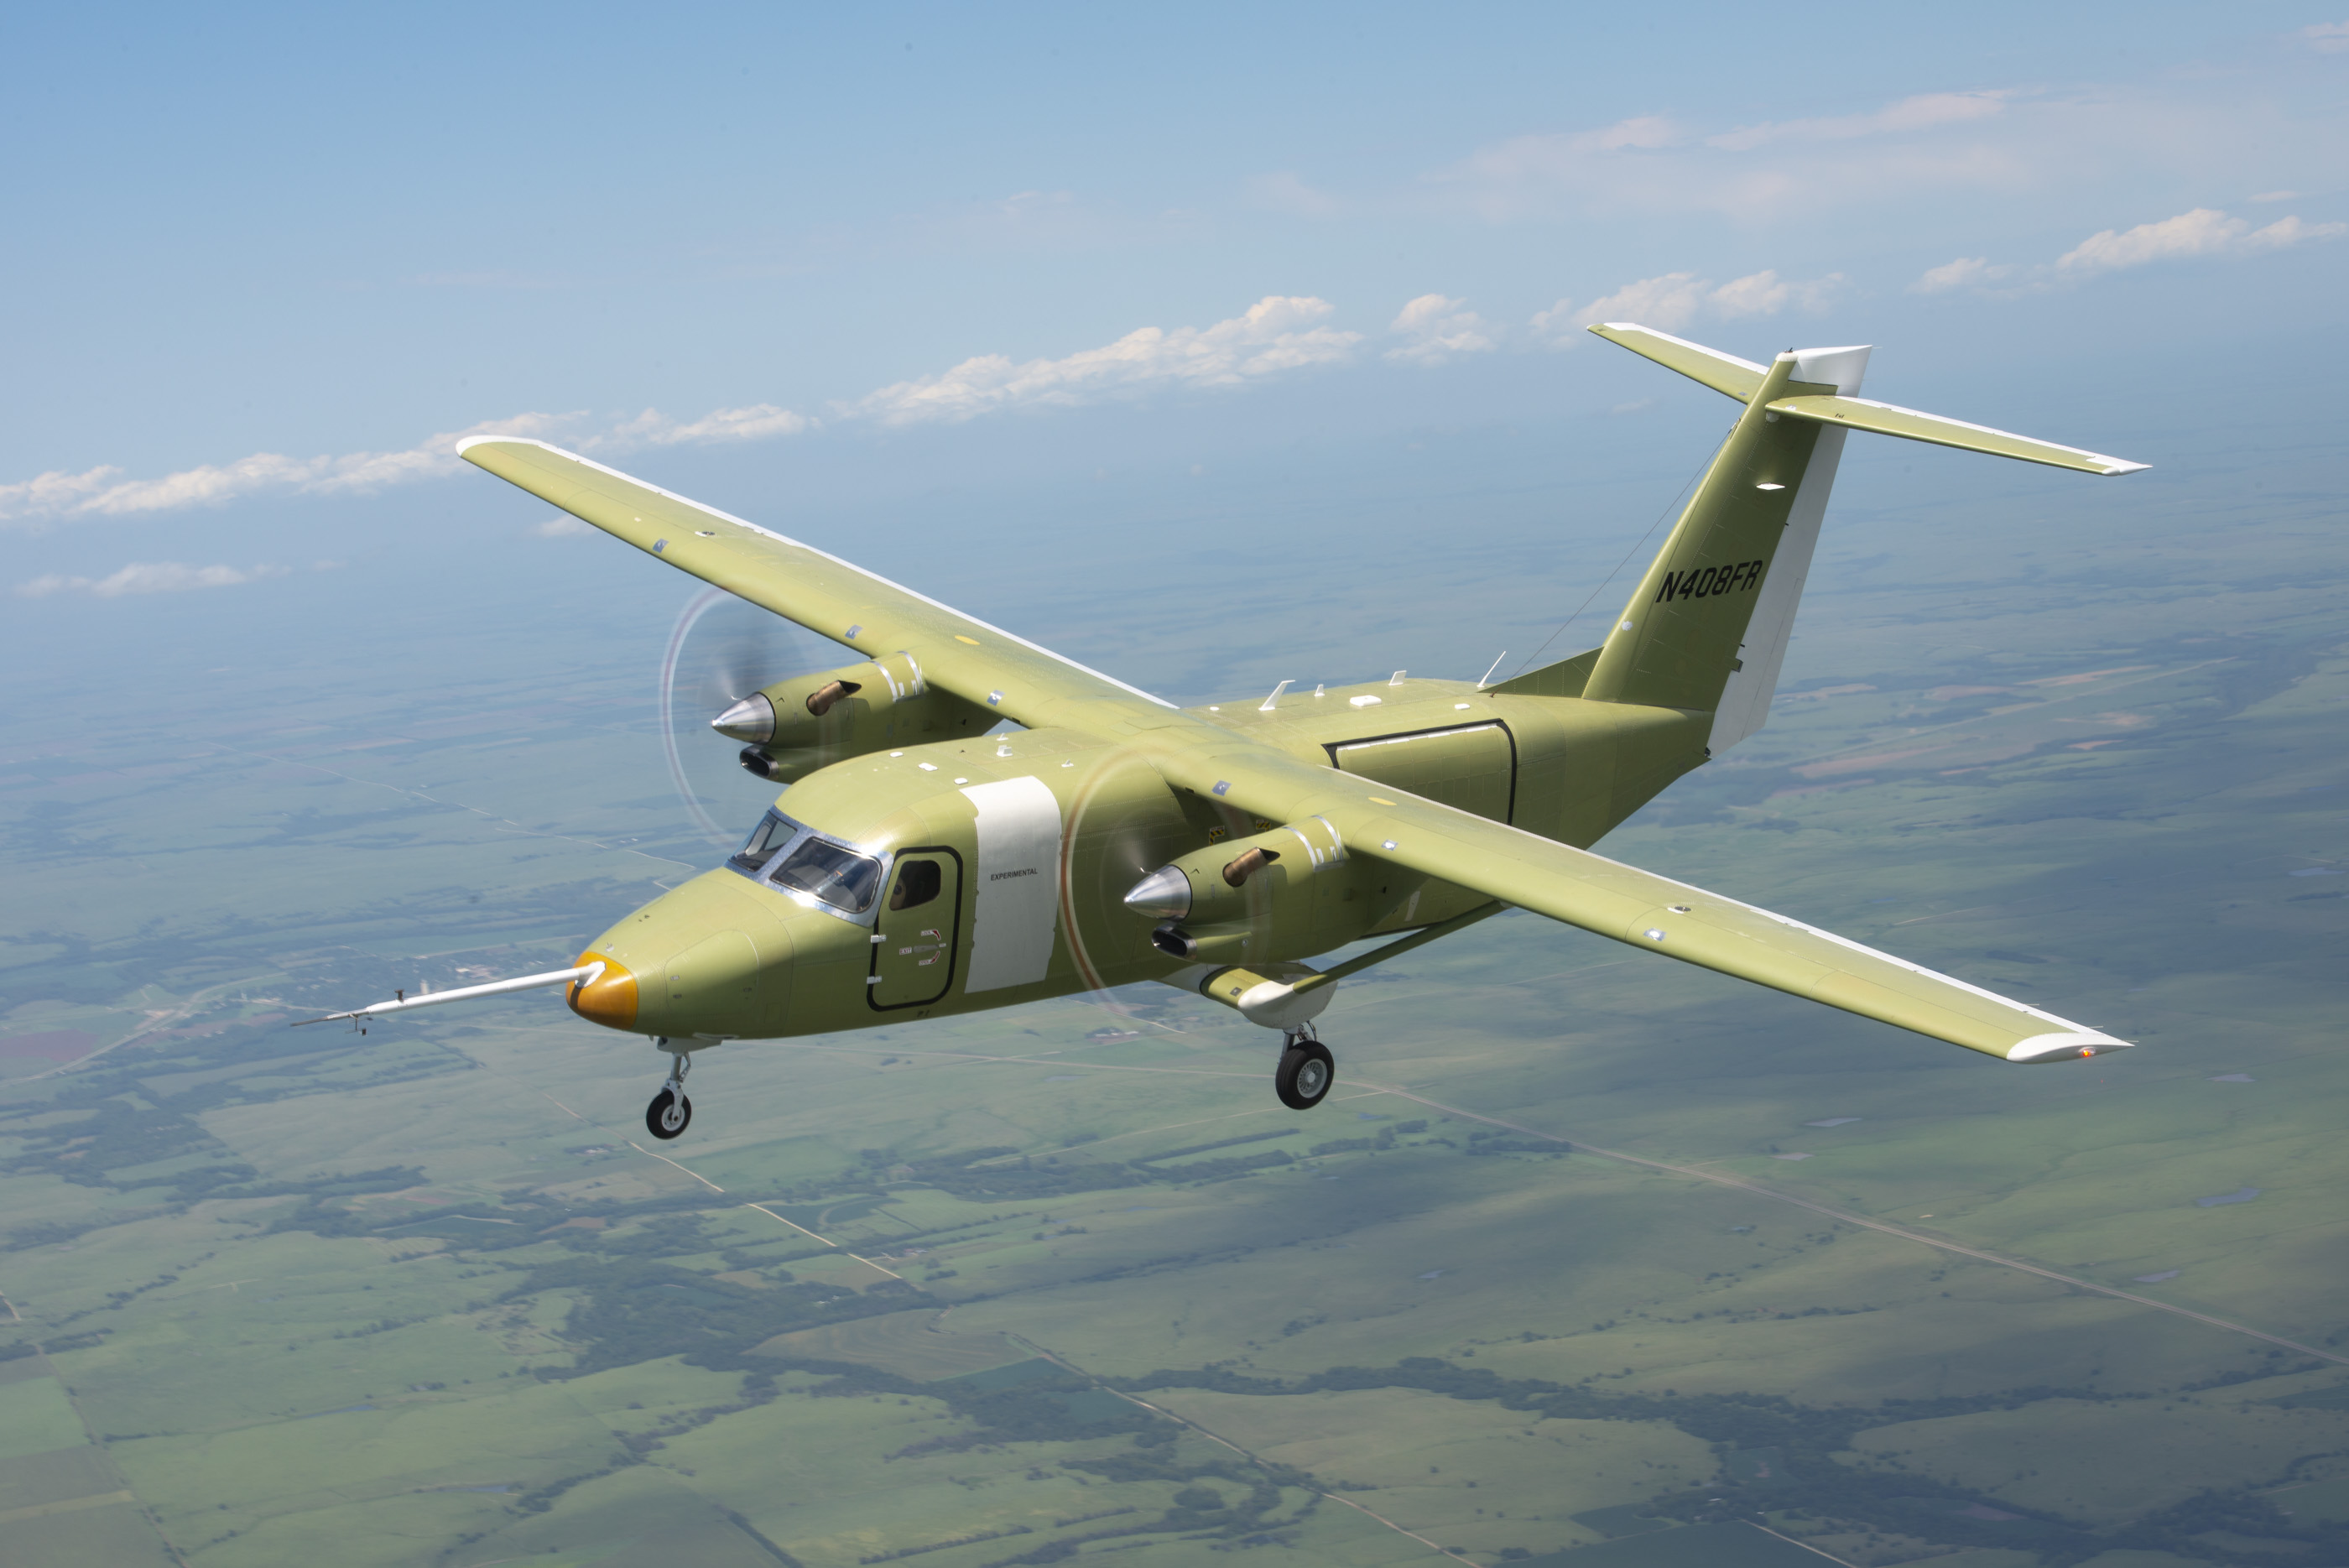 Momentum builds for Cessna SkyCourier as second test article takes flight